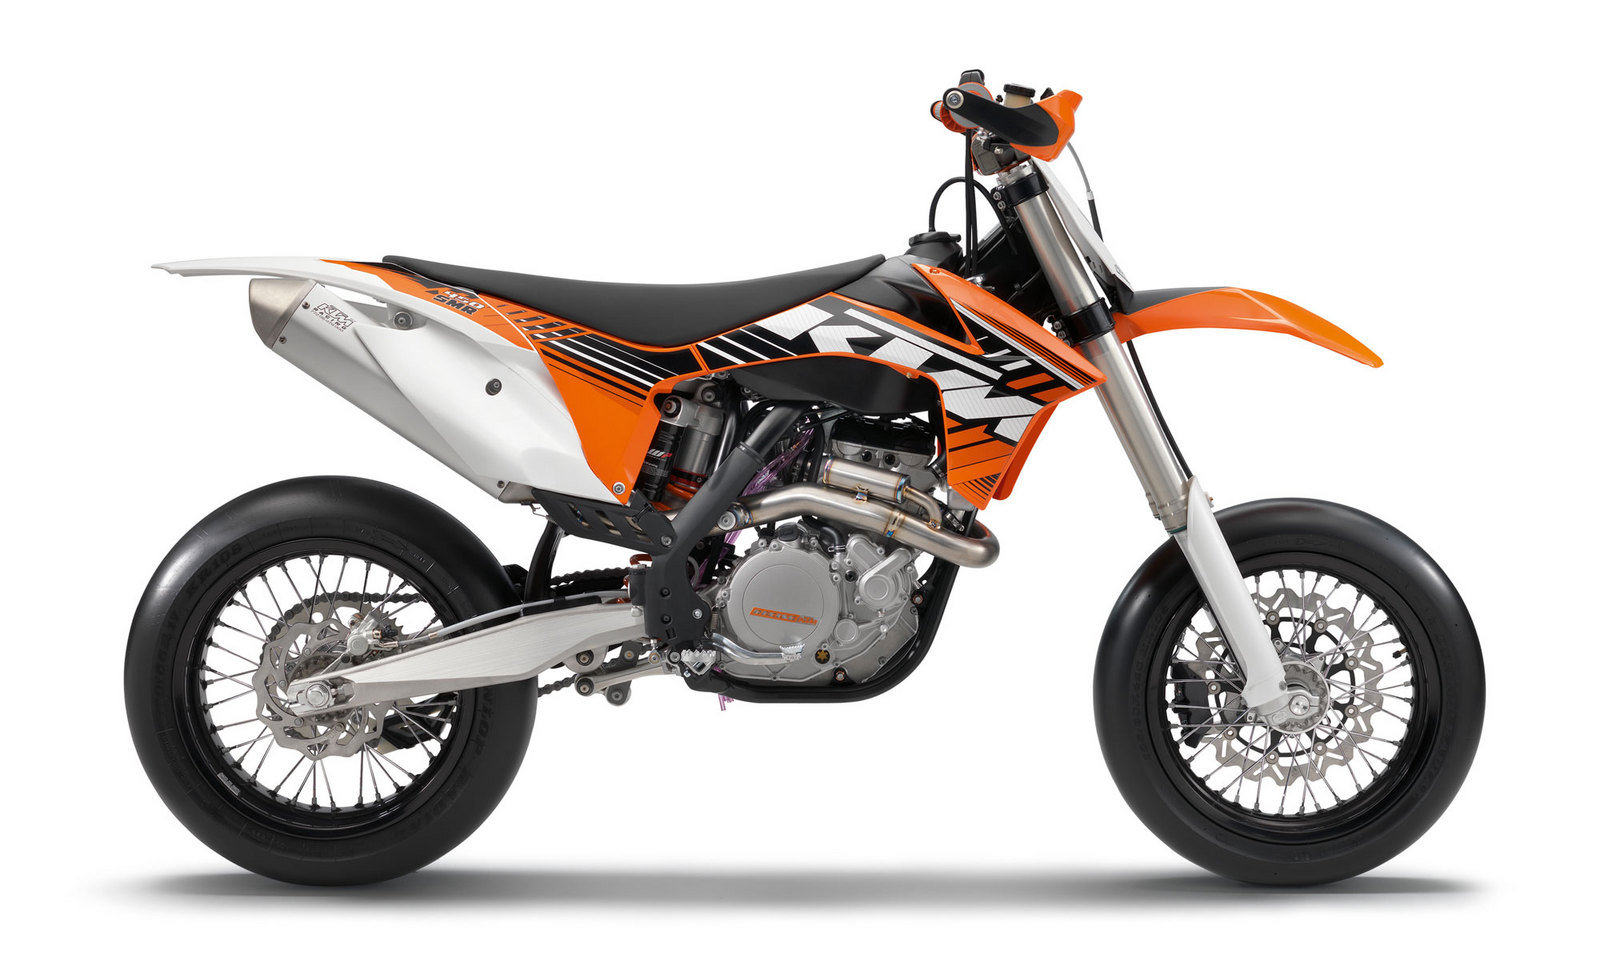 2013 KTM 450 SMR - Picture 513551 | motorcycle review ...